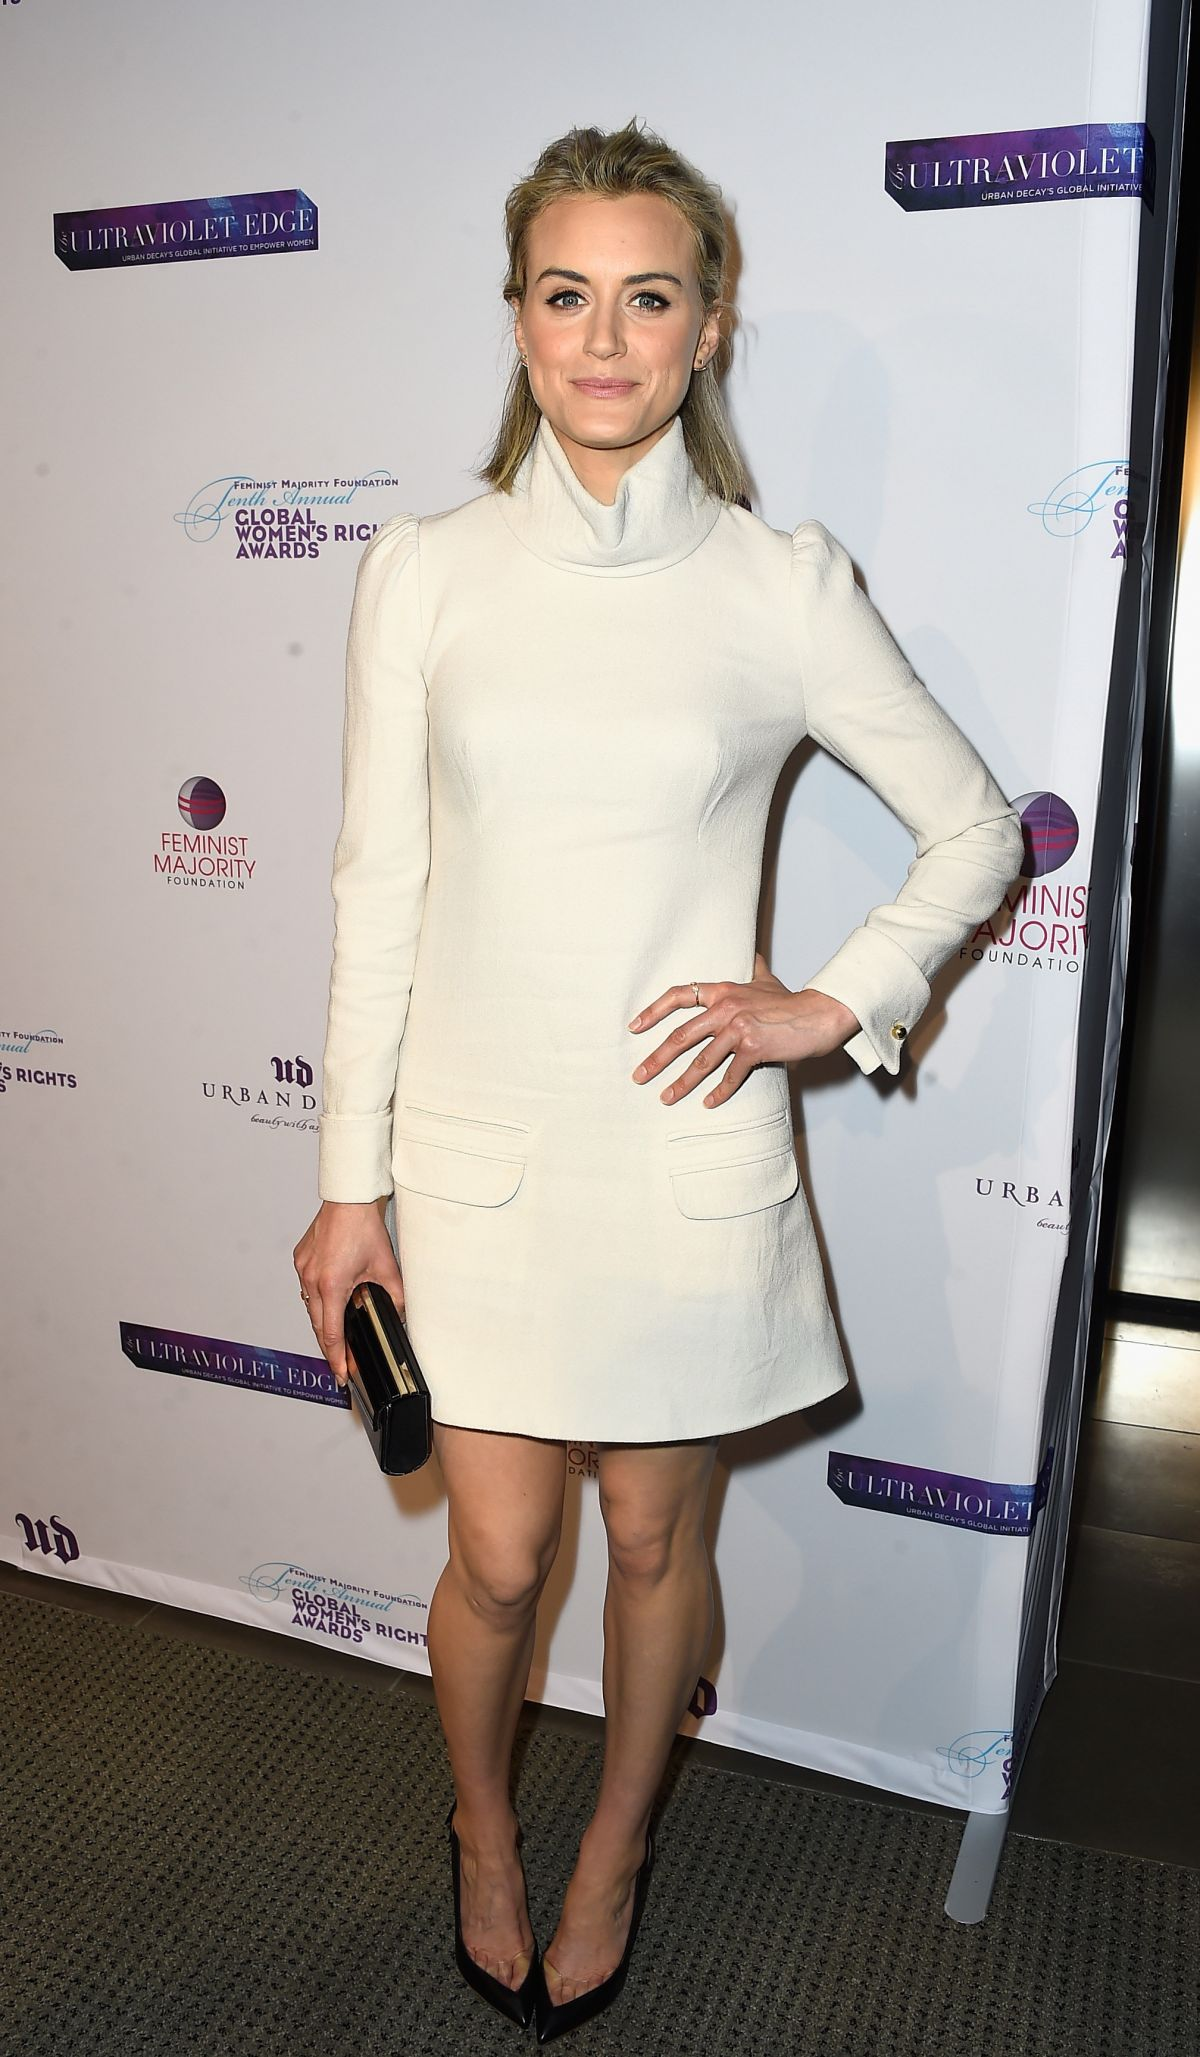 TAYLOR SCHILLING at 2015 Global Women